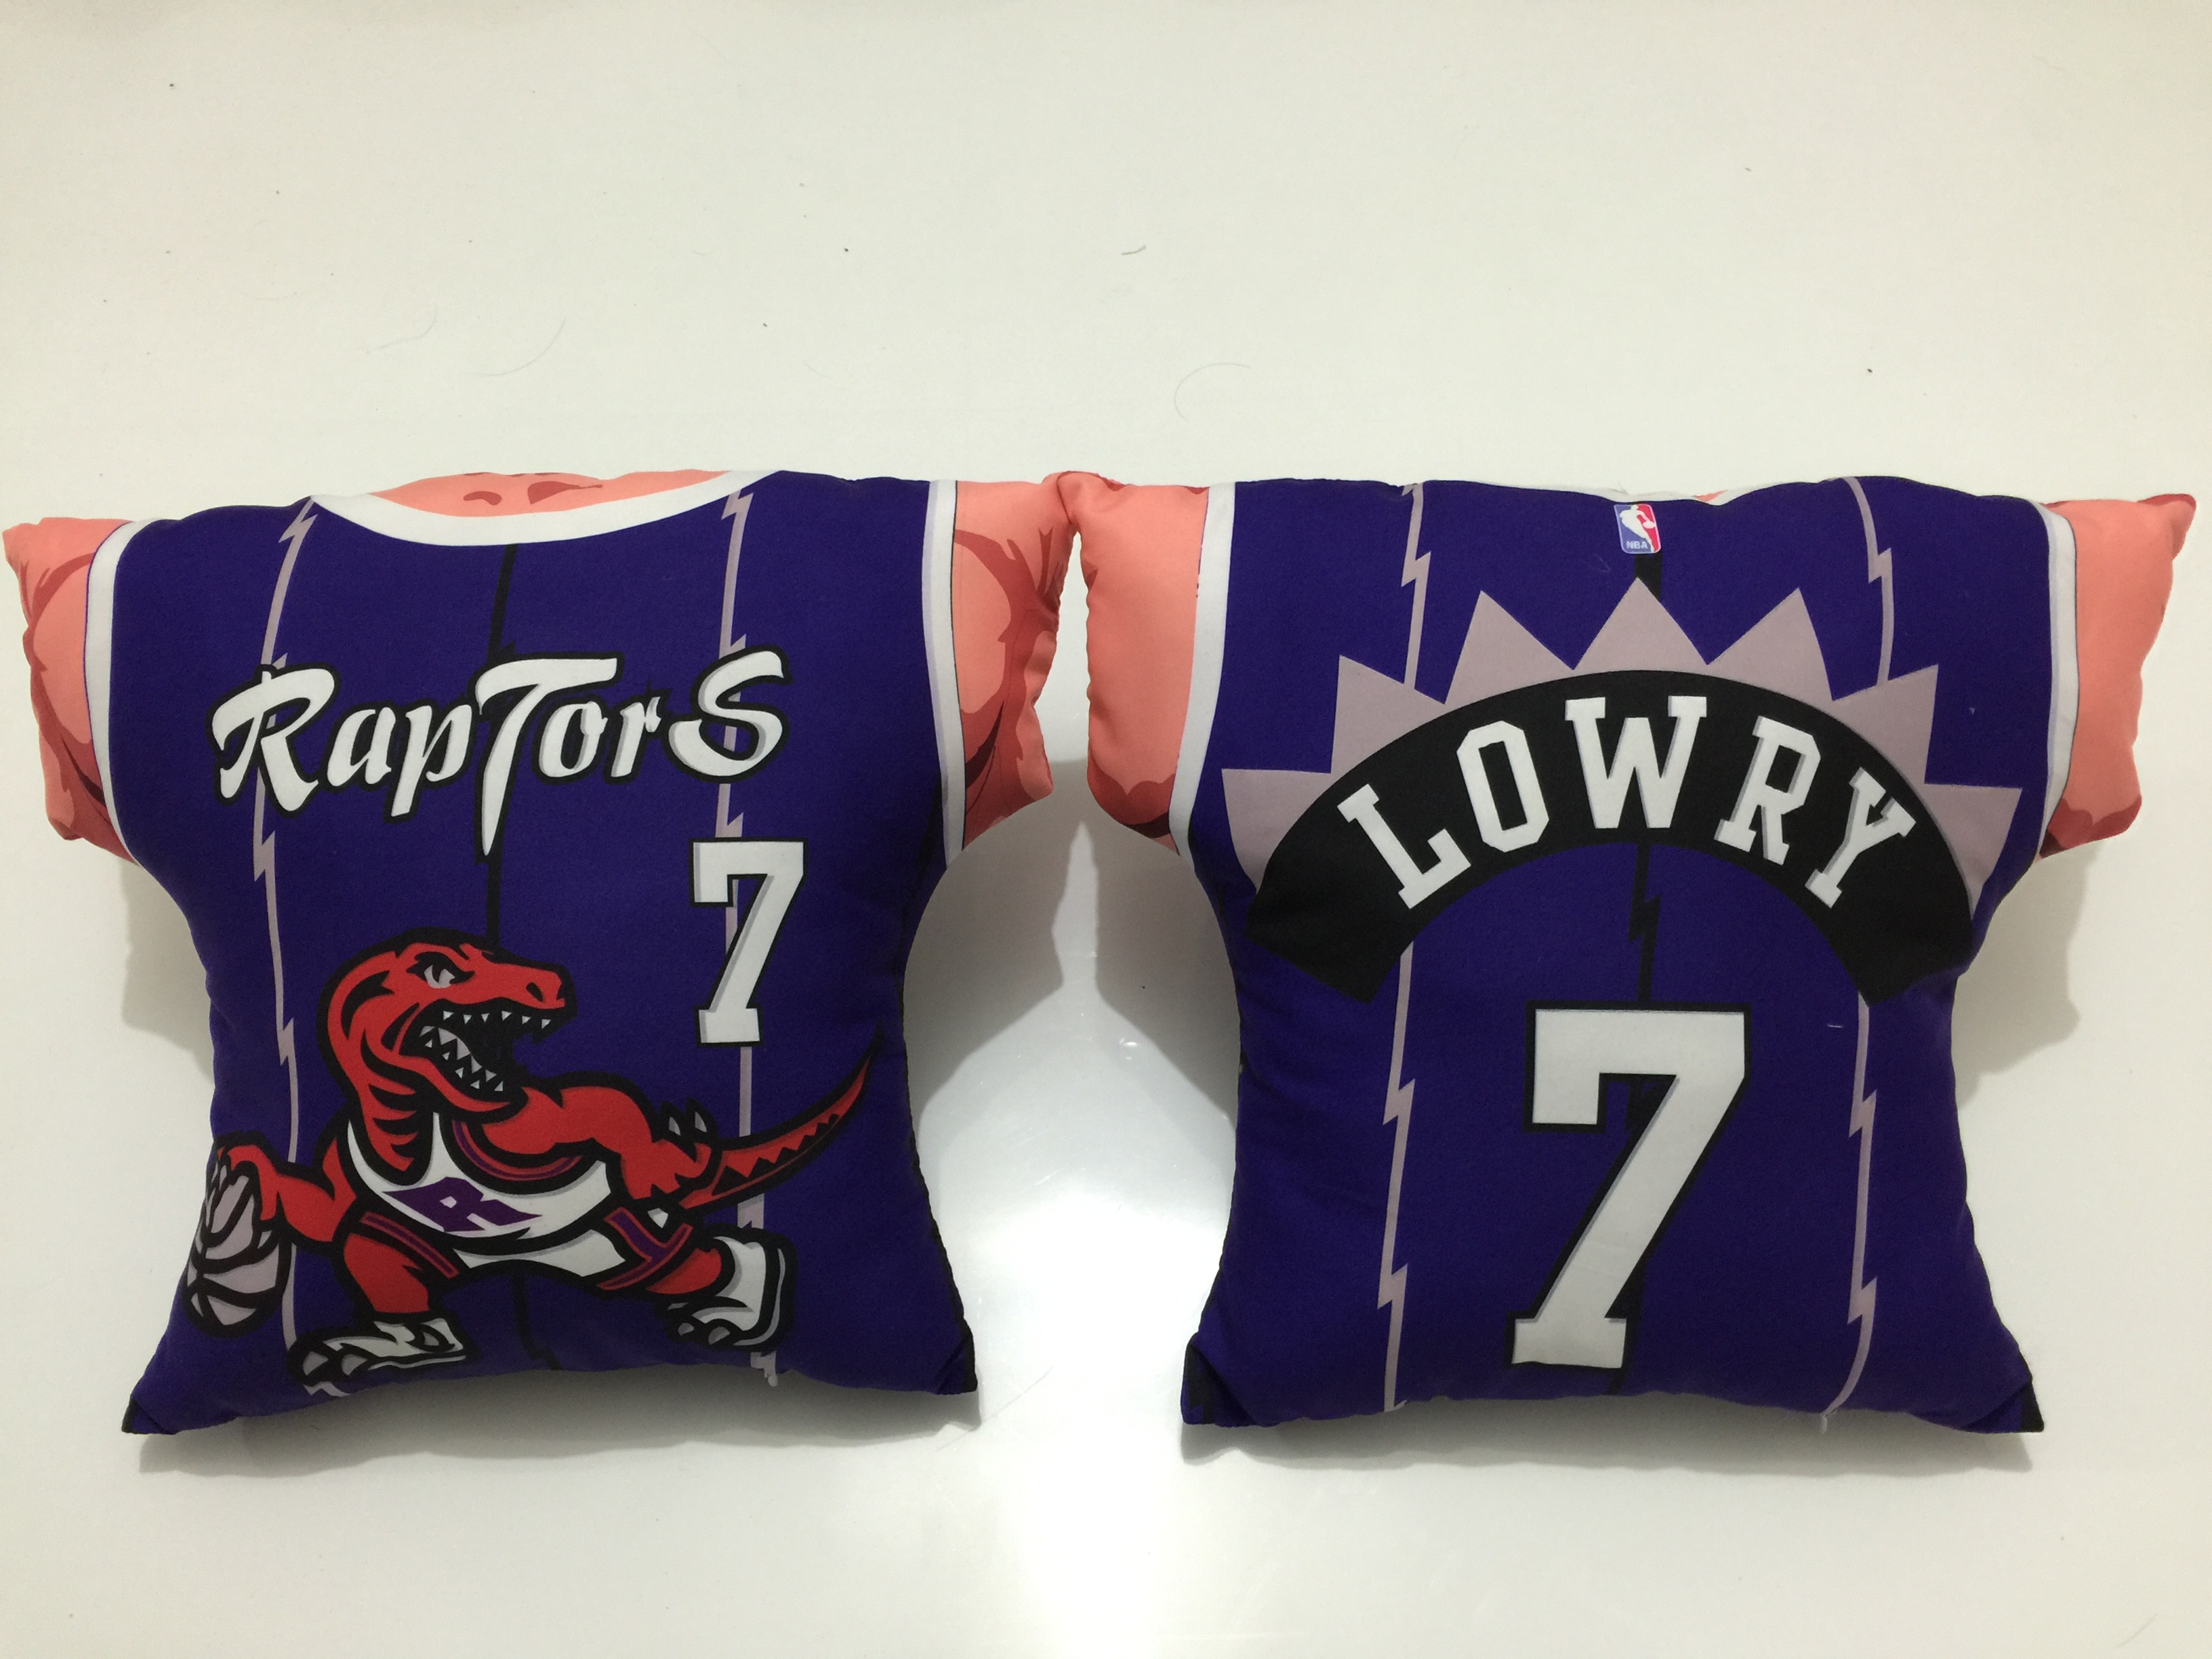 Toronto Raptors 7 Kyle Lowry Purple NBA Pillow